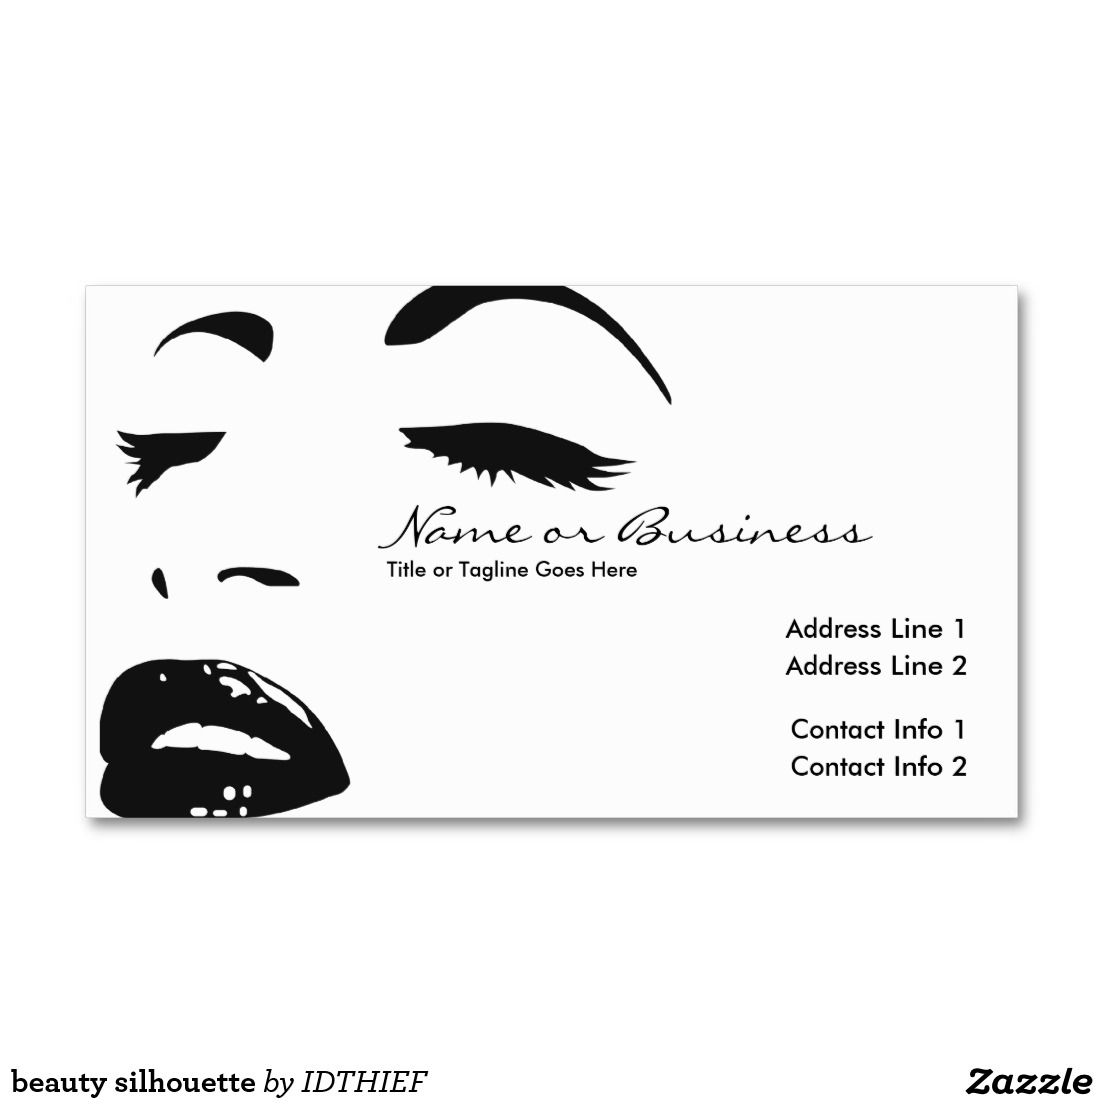 Beauty silhouette business card business cards silhouette and beauty silhouette business card reheart Image collections